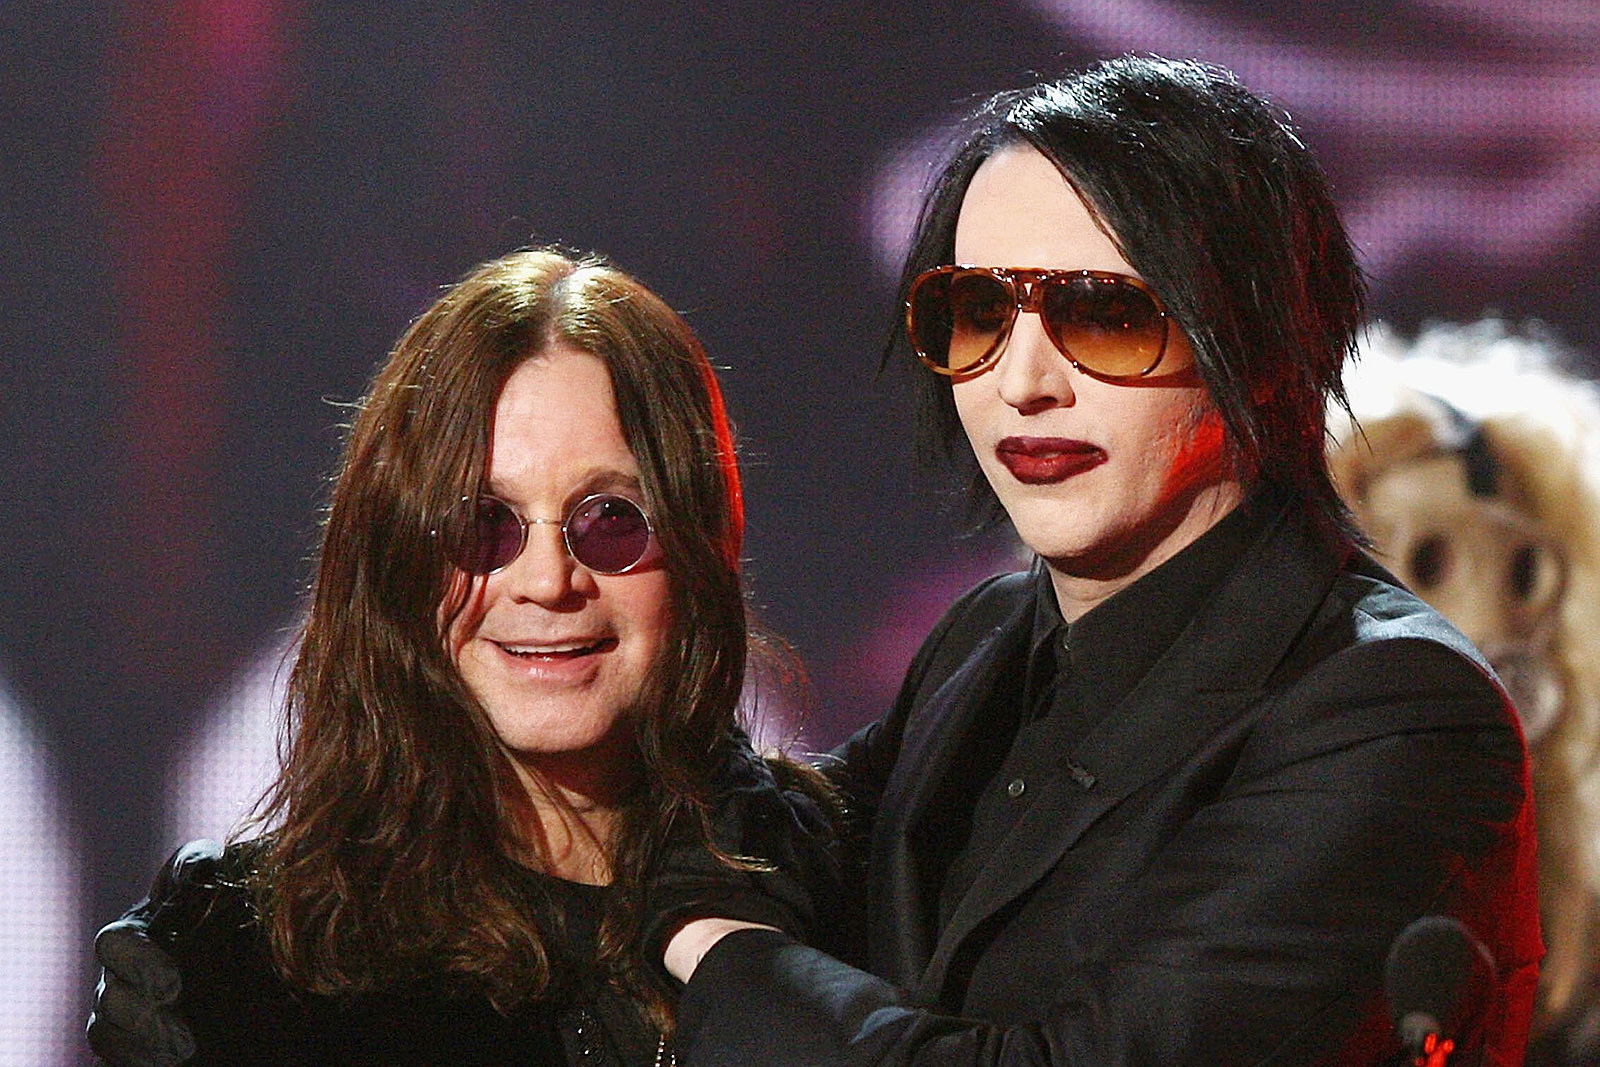 Marilyn Manson to Open for Ozzy Osbourne on 2020 Tour